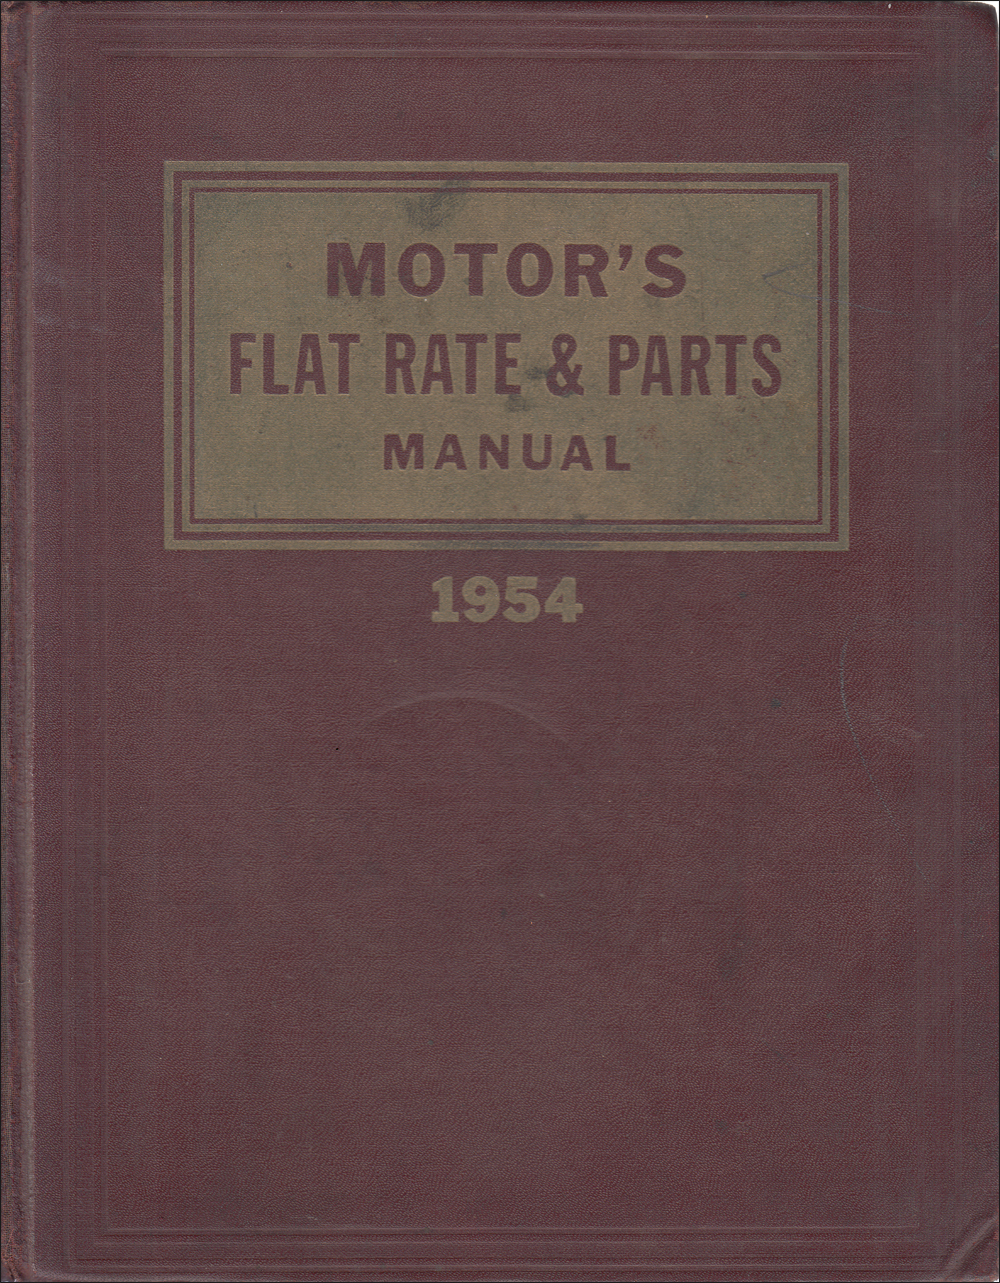 1940-1954 26th Edition Motors Labor Guide